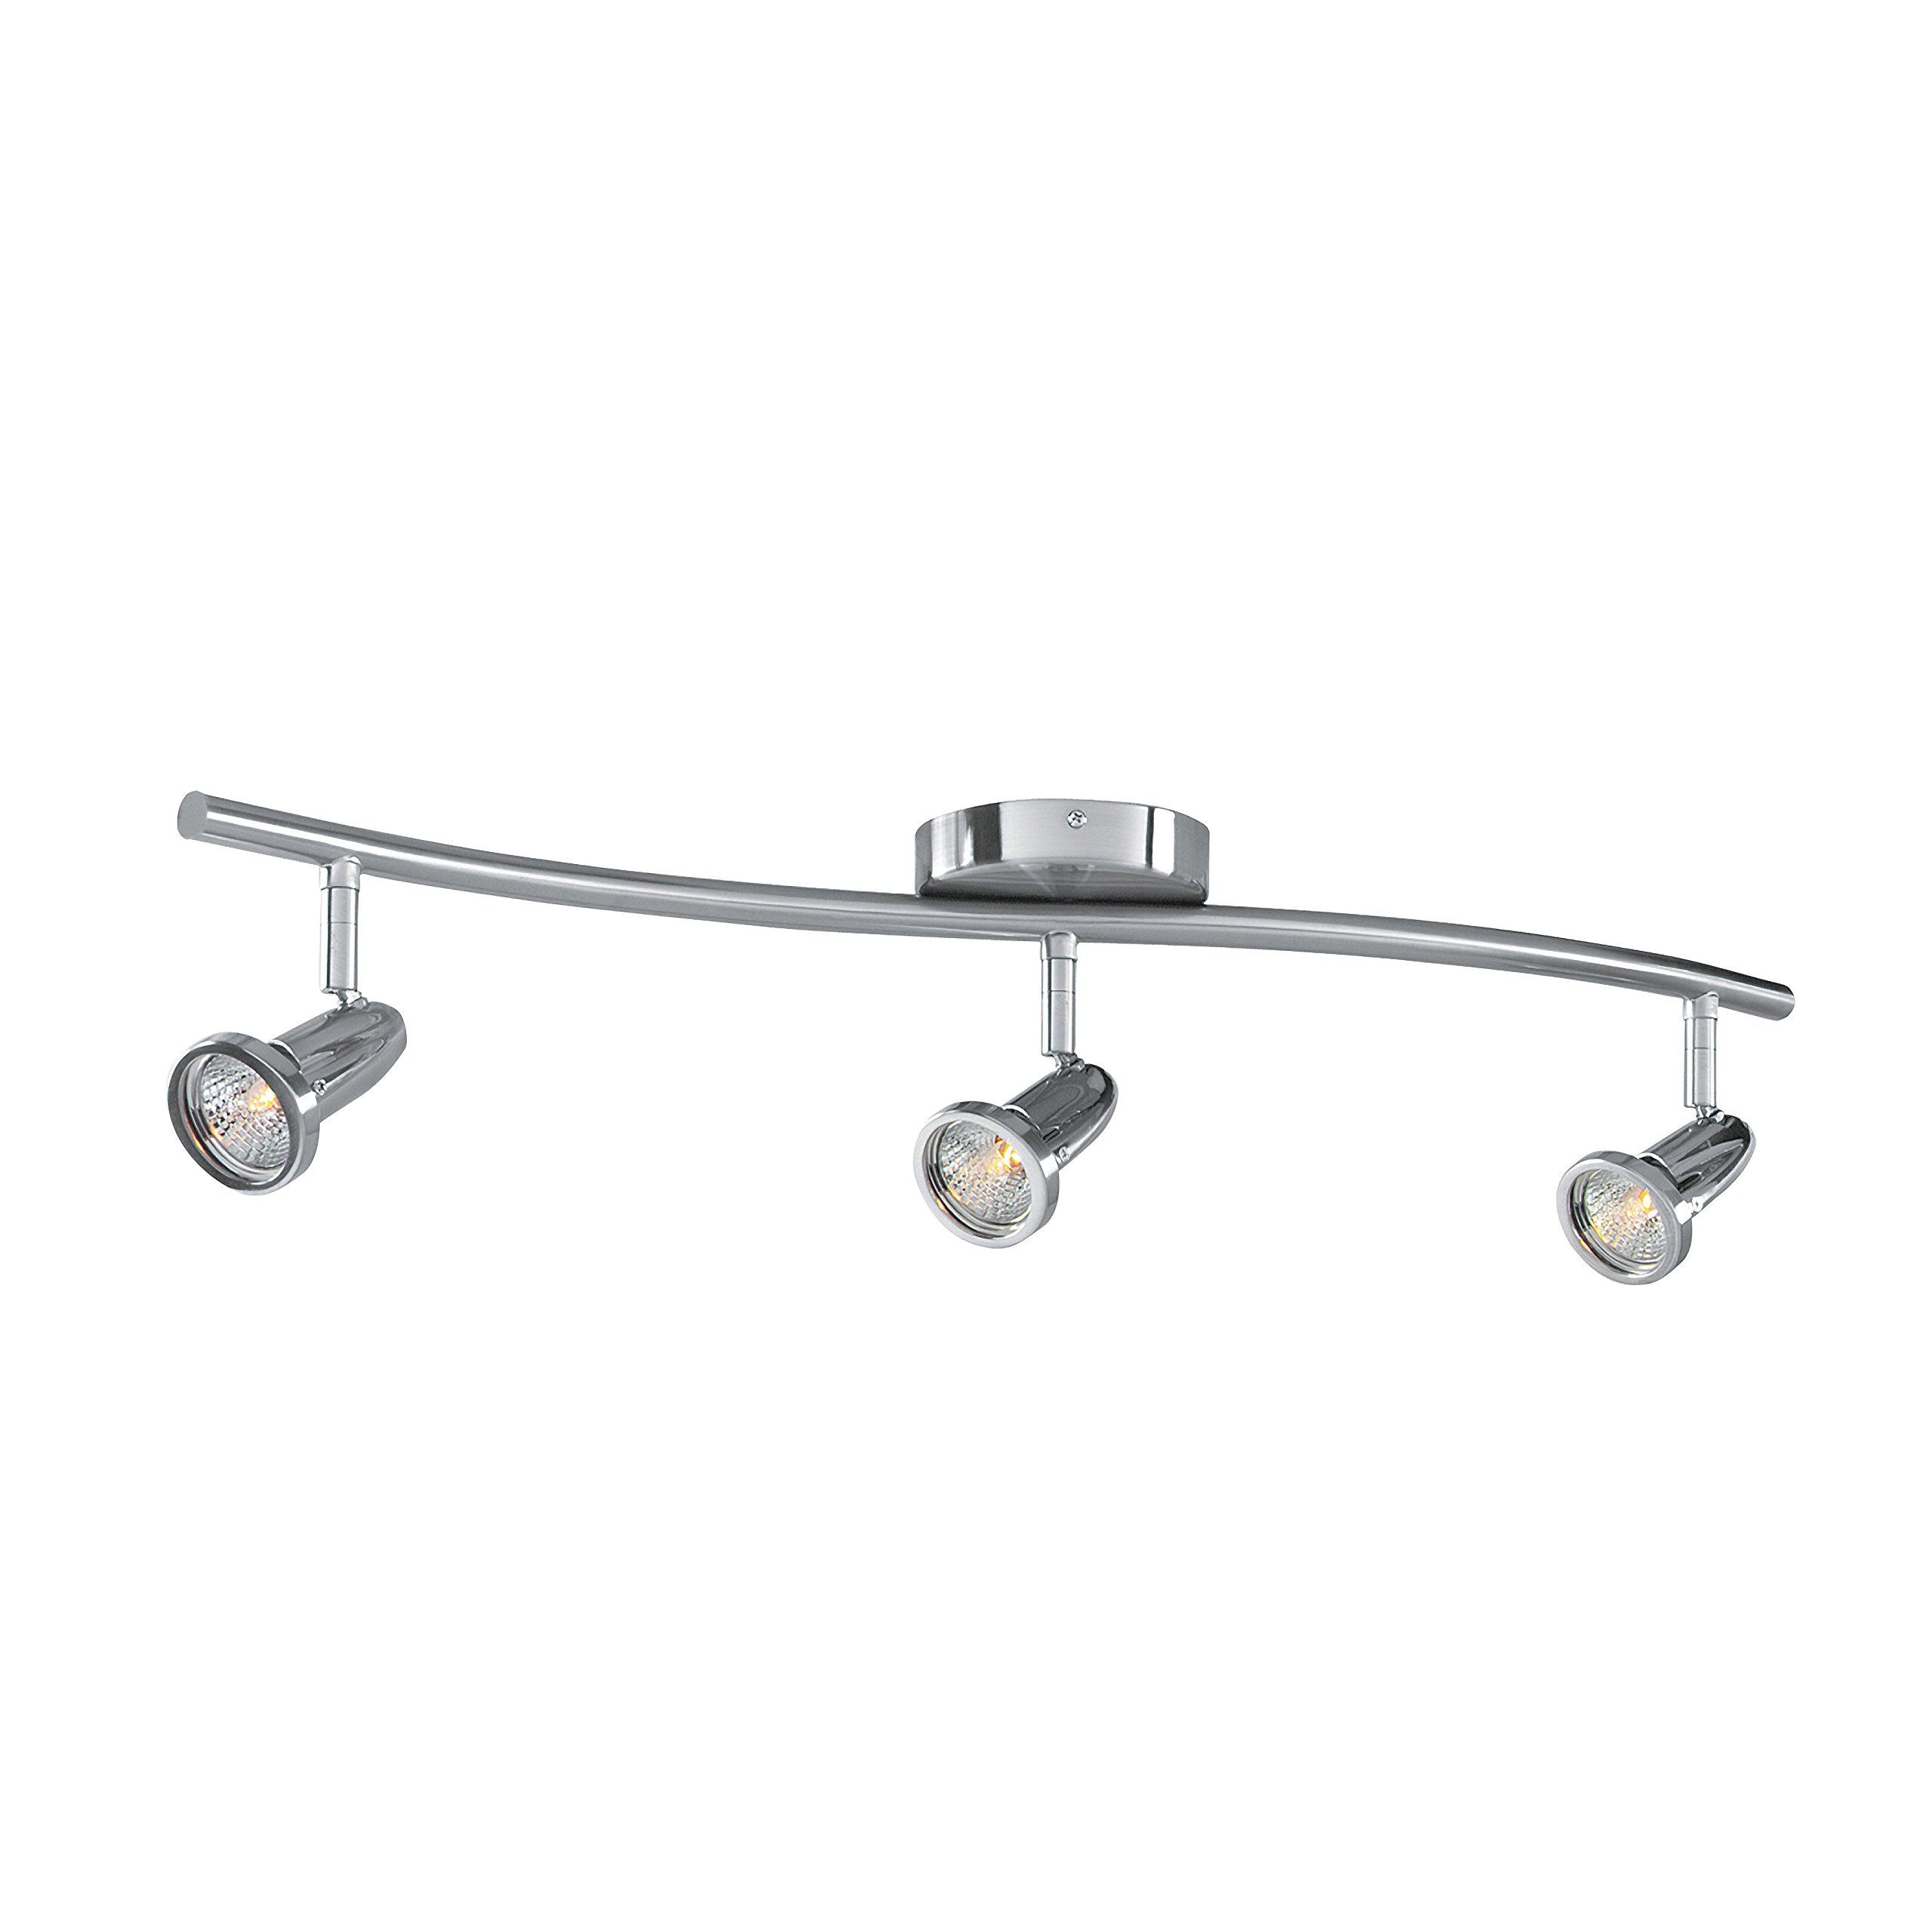 Cobra - LED Wall/Ceiling Semi-Flush Spotlight Bar - 3-Light - Brushed Steel Finish